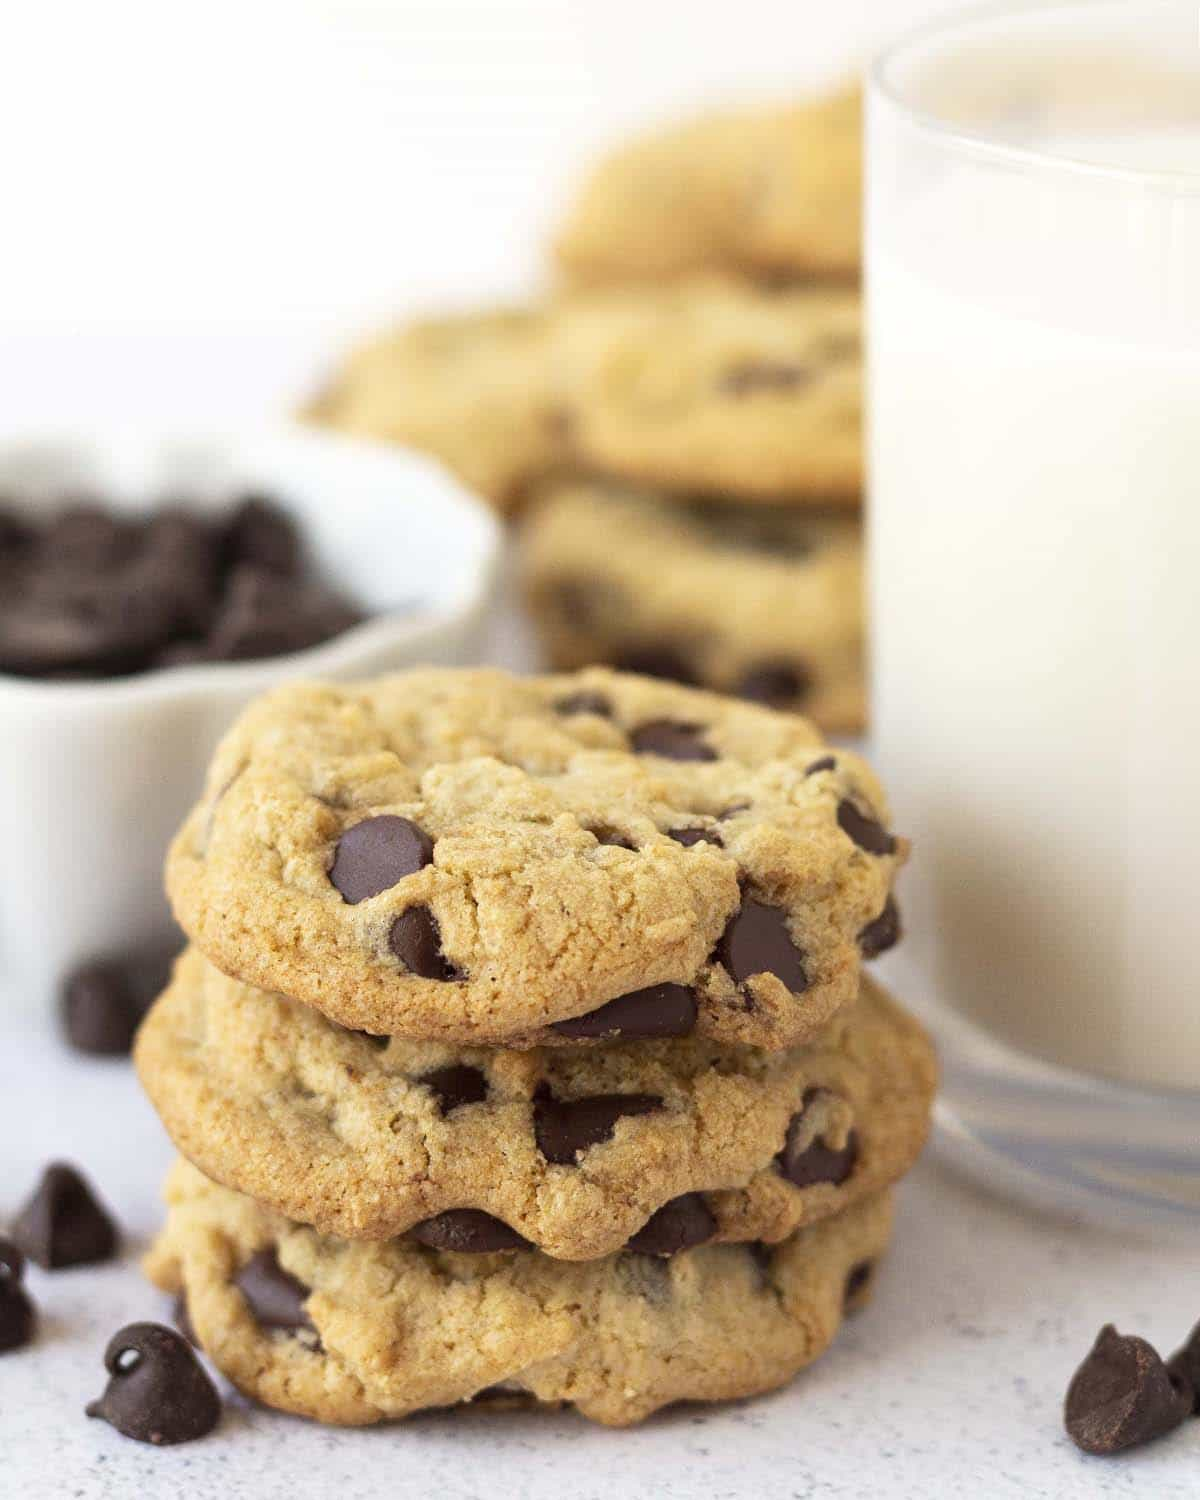 A stack of three vegan gluten-free chocolate chip cookies sitting in front of a glass of almond milk.